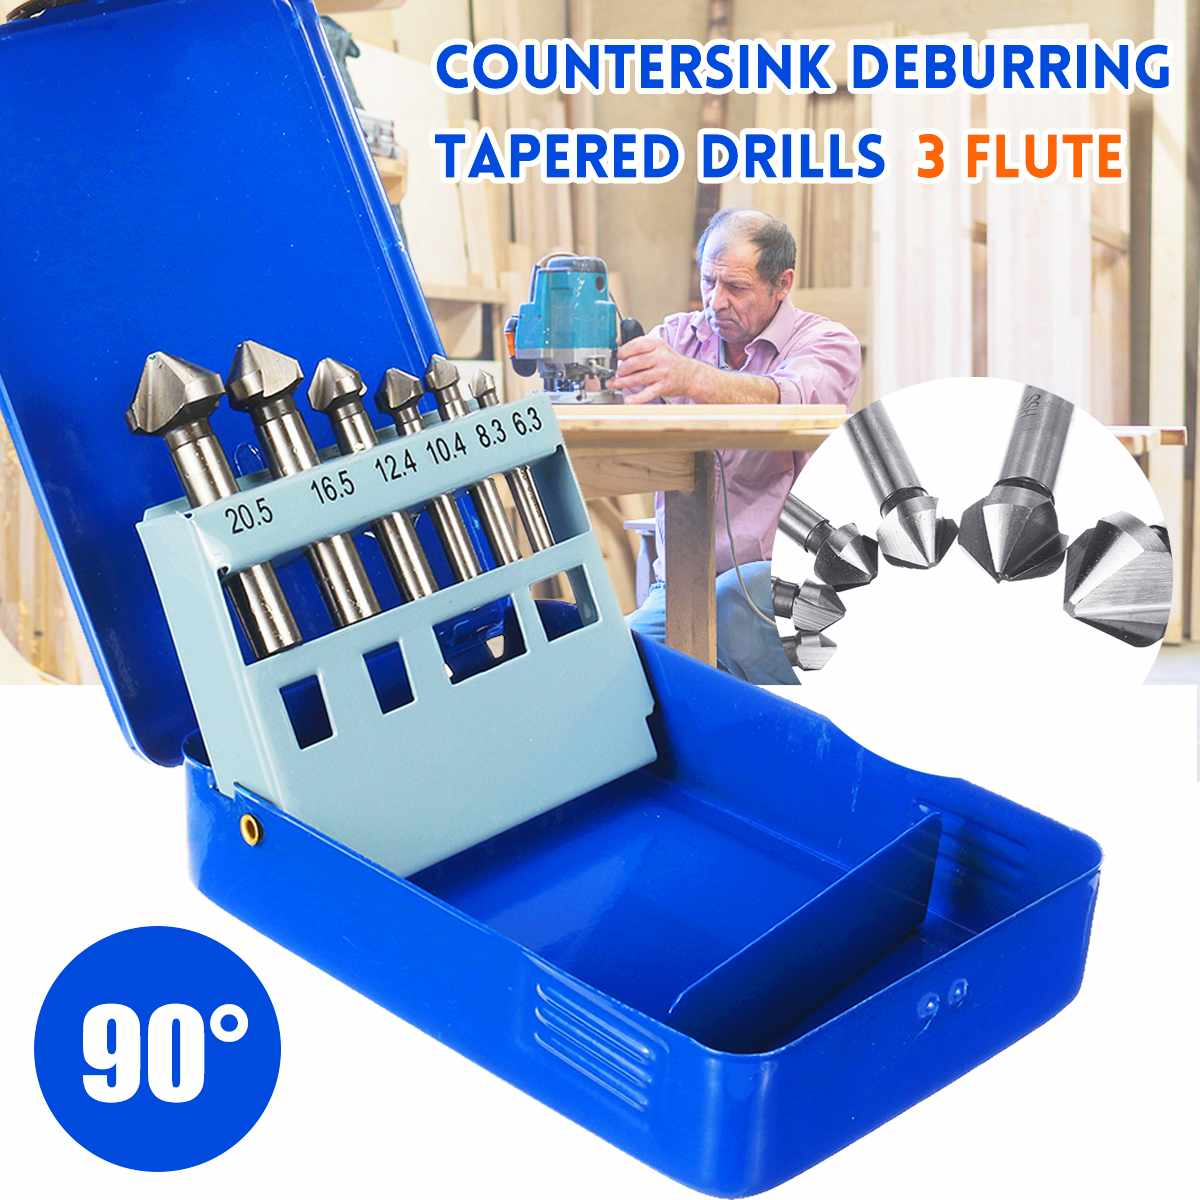 6Pcs 90° High Speed Steel Countersink Deburring Tapered Drills 3 Flute Taper Power Drills Hand Tool Bits